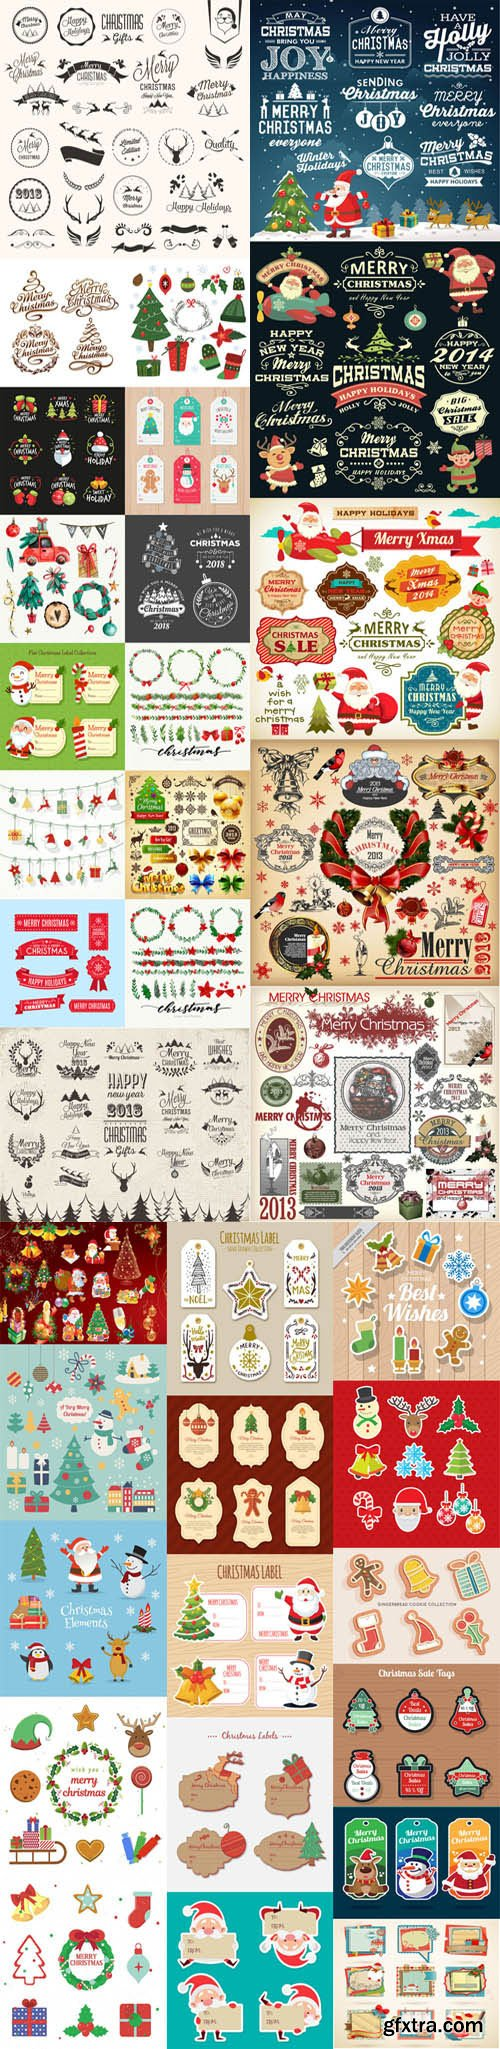 Christmas Elements Vector Pack 1 [Ai/EPS]